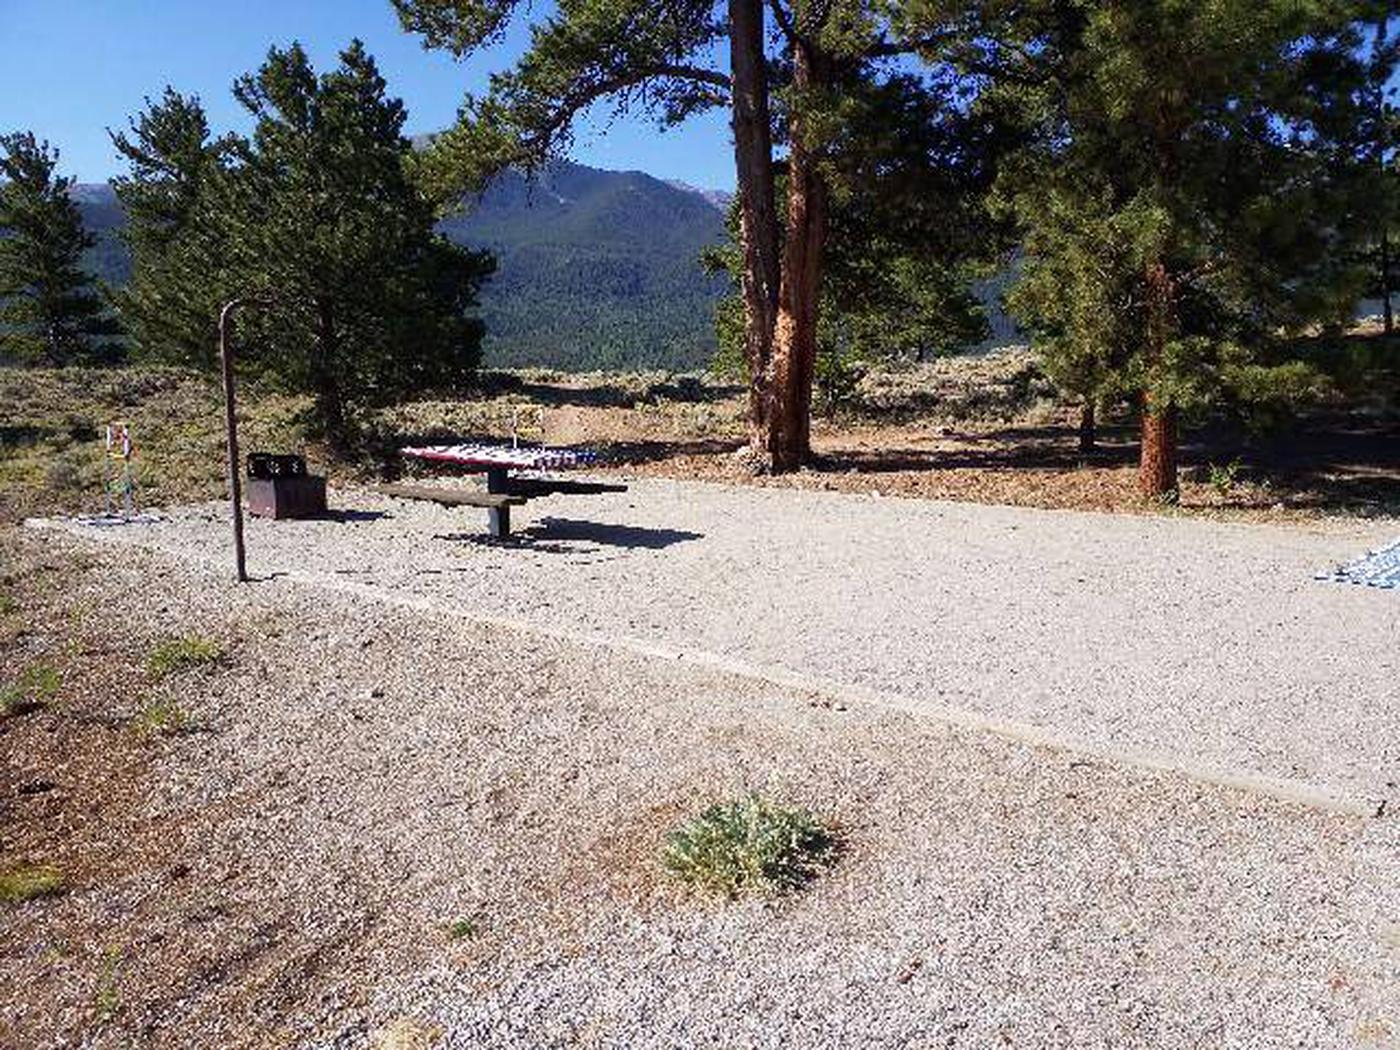 White Star Campground, site 7 picnic table, fire ring, and tent pad